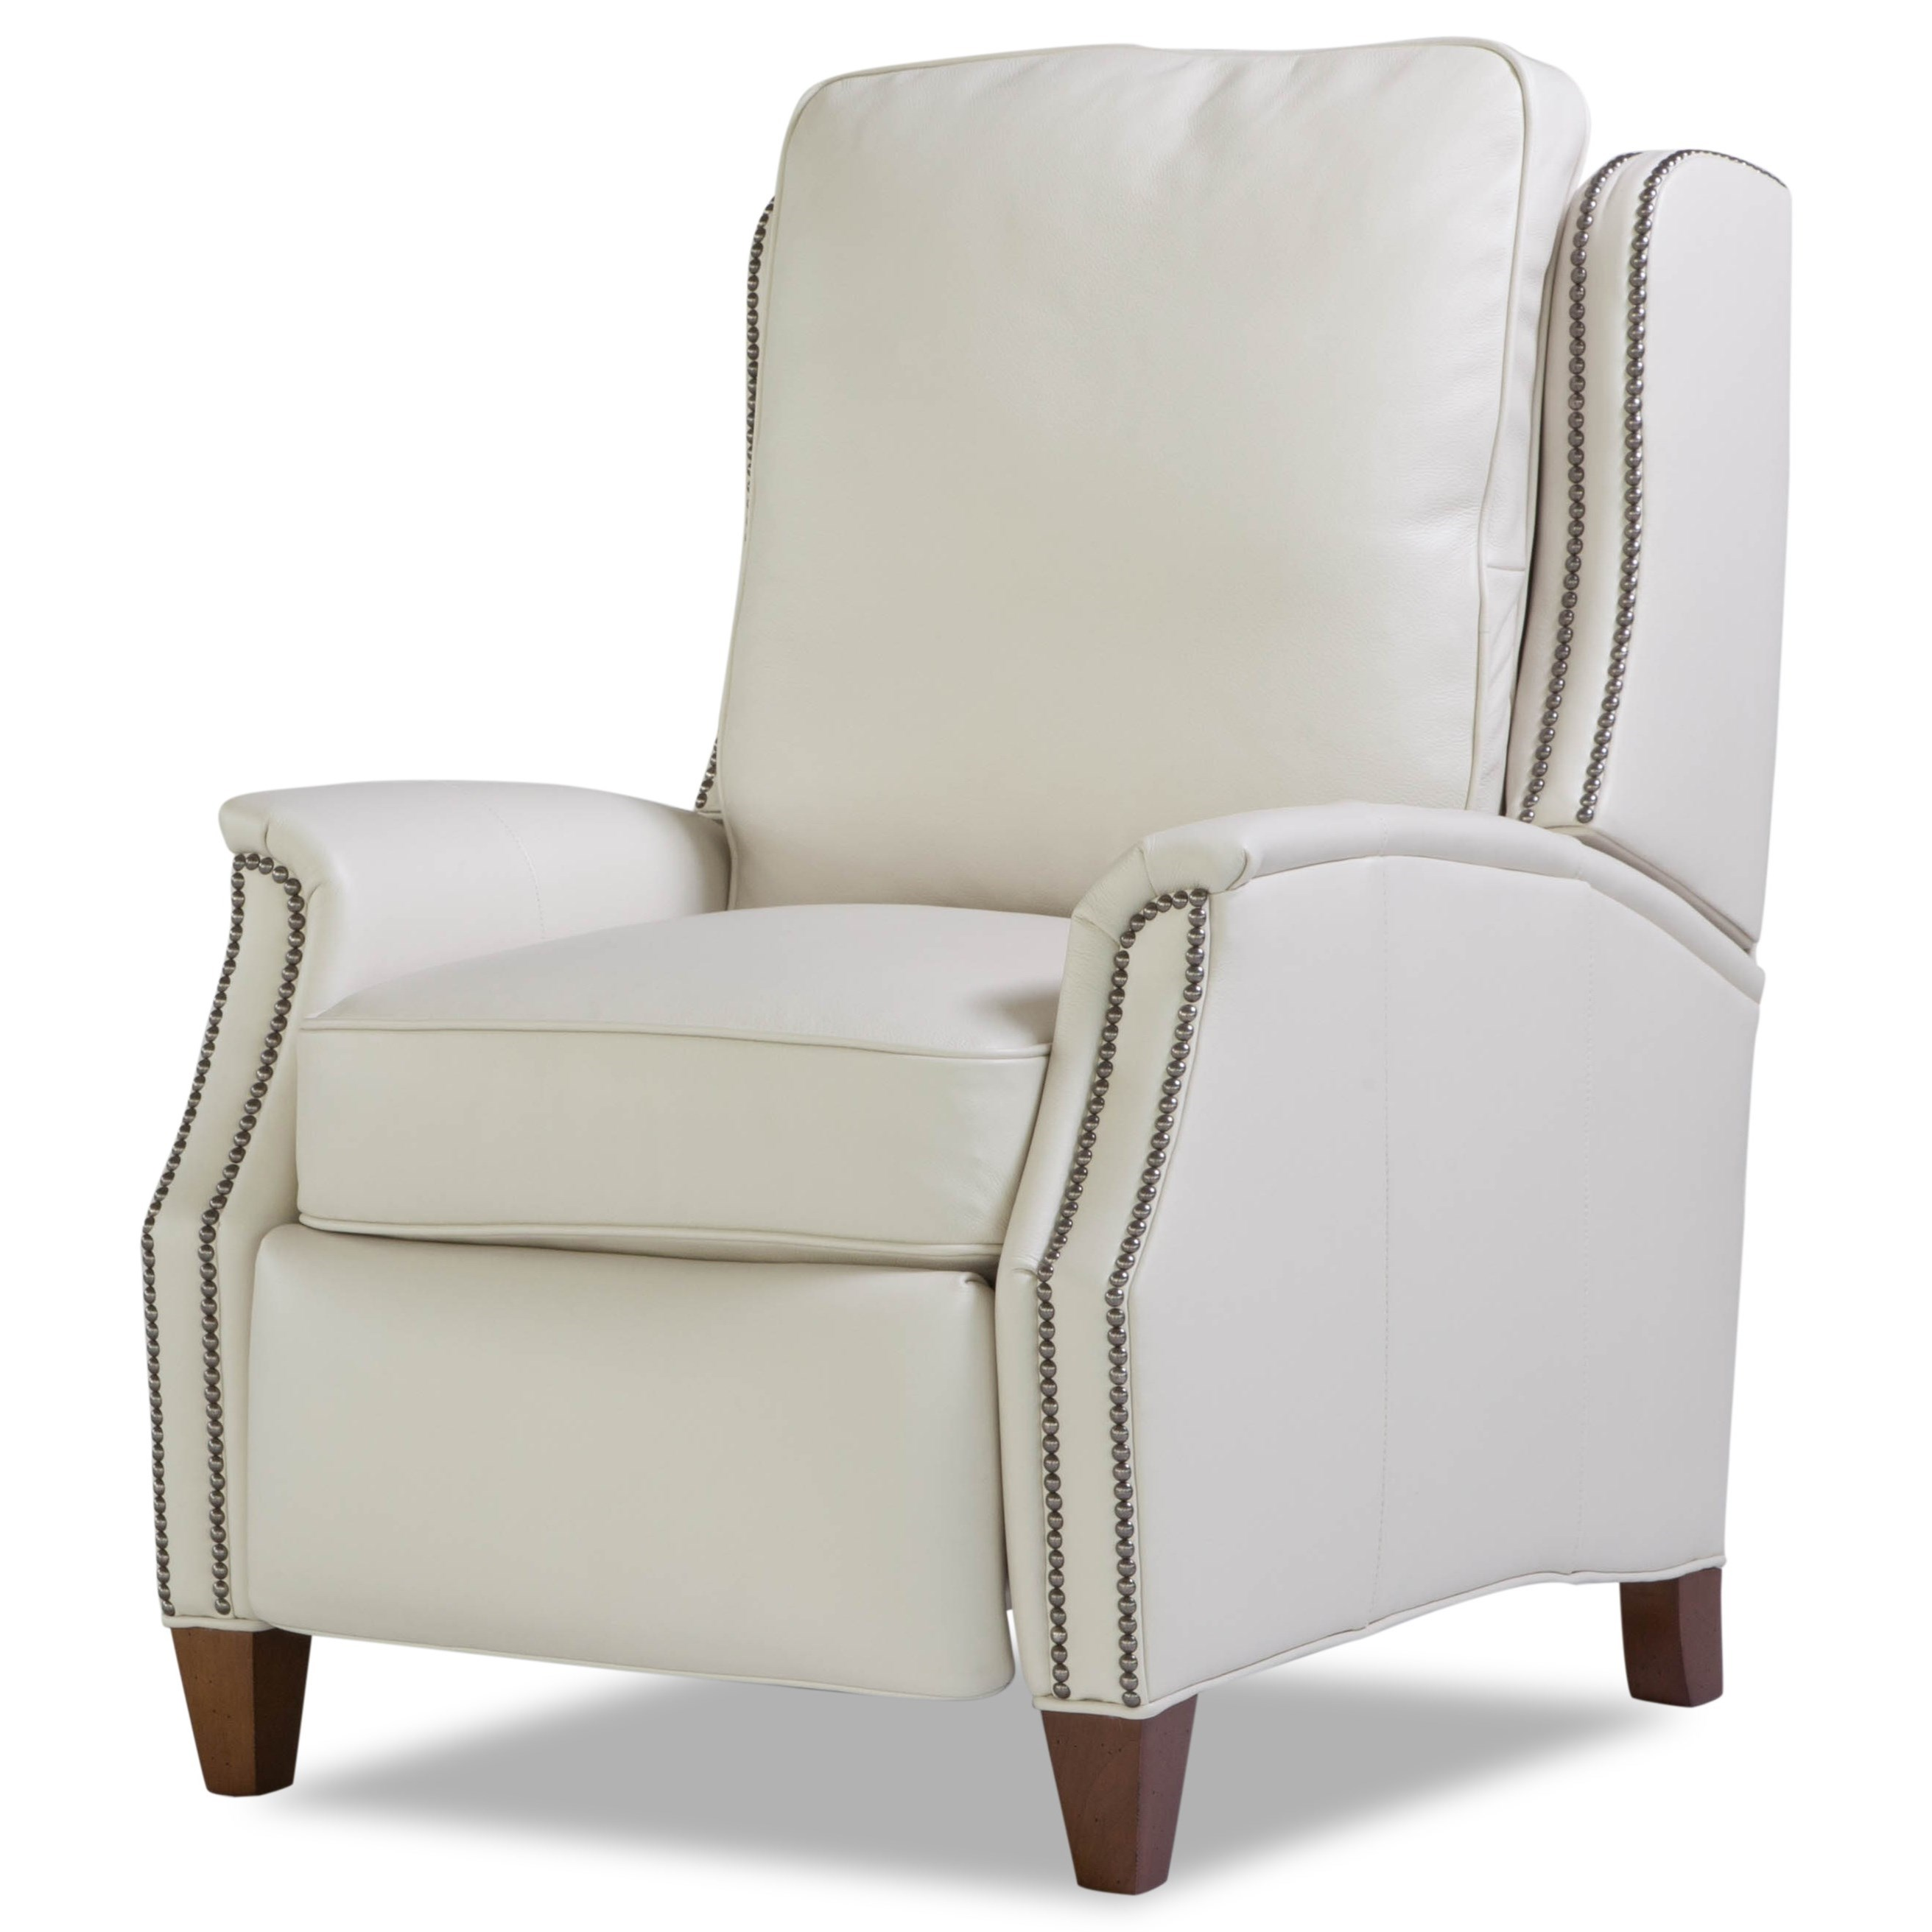 Hunington Furniture Huntington House 8119 Transitional Power Recliner With Nailhead